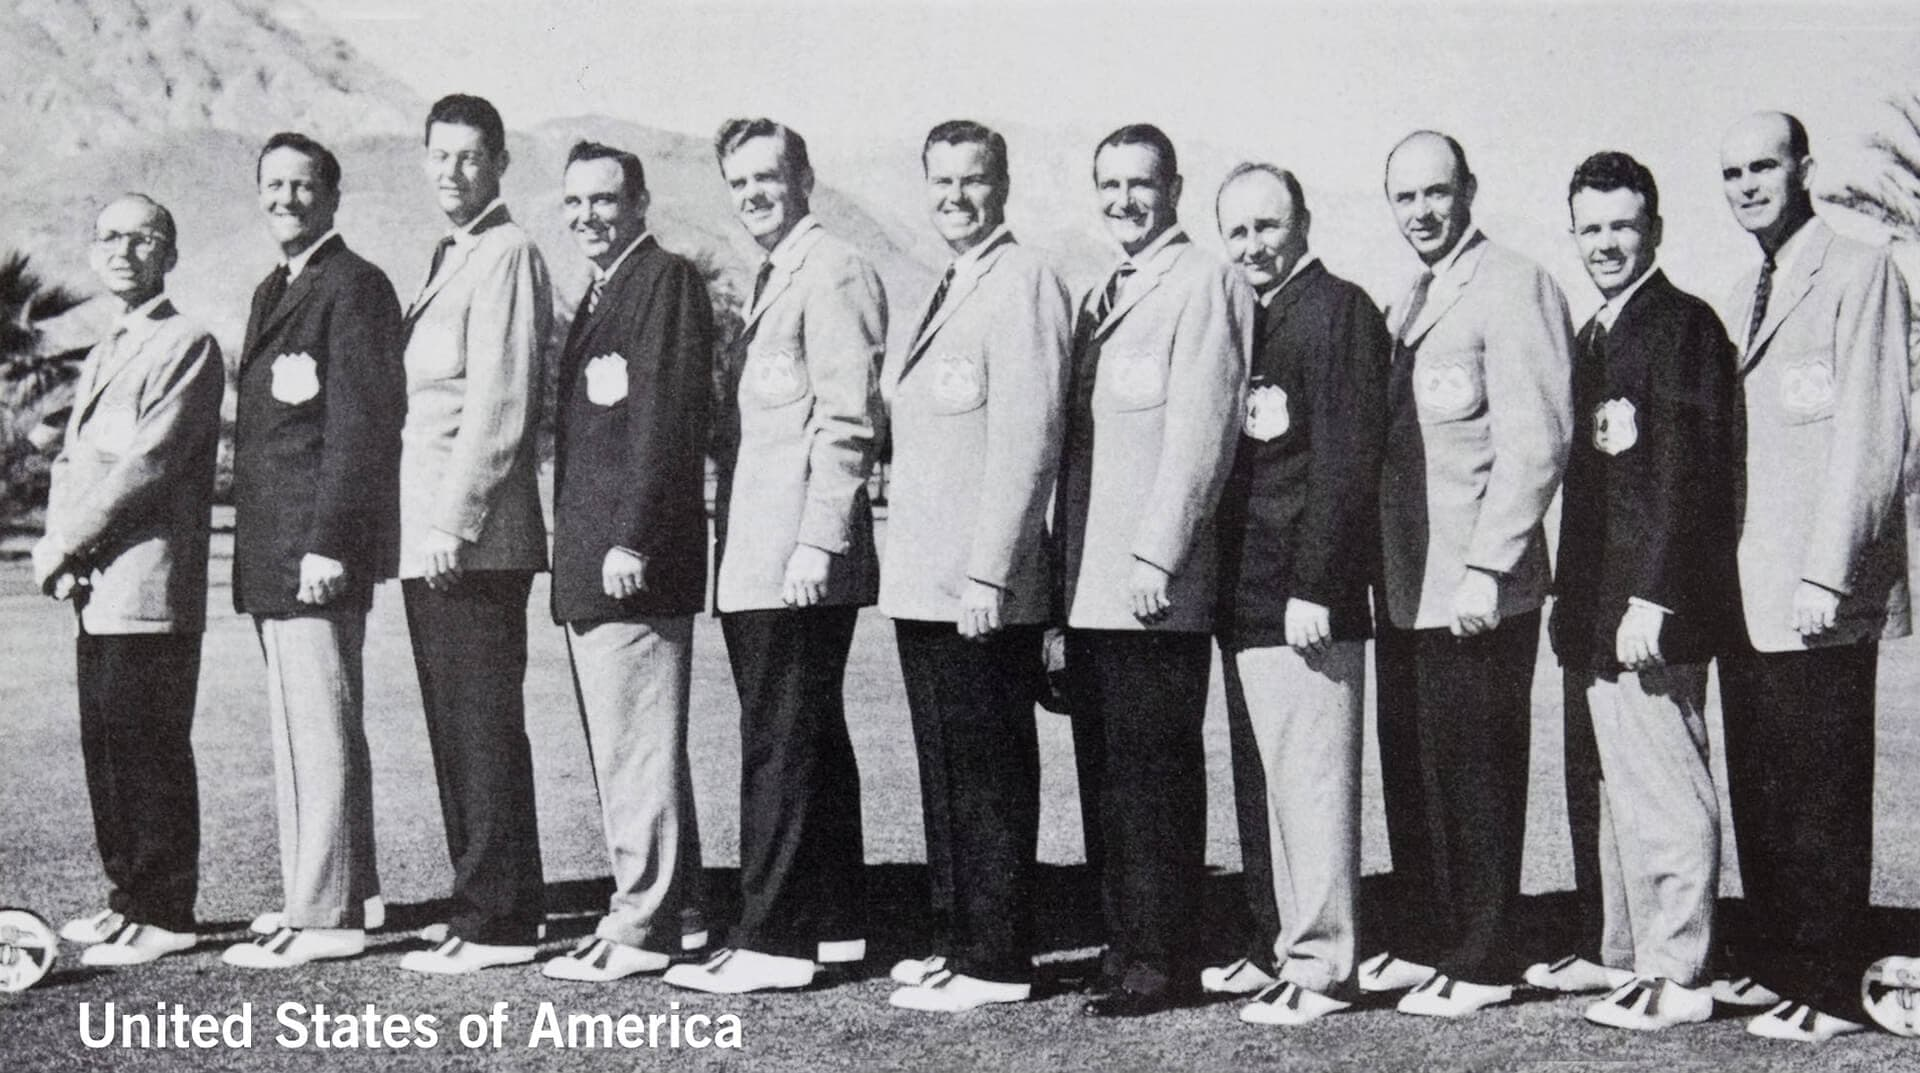 1955 Thunderbird Golf Club, California. USA Team. November 5th & 6th. Final Score: U.S.A. 8 - Britain & Ireland 4.